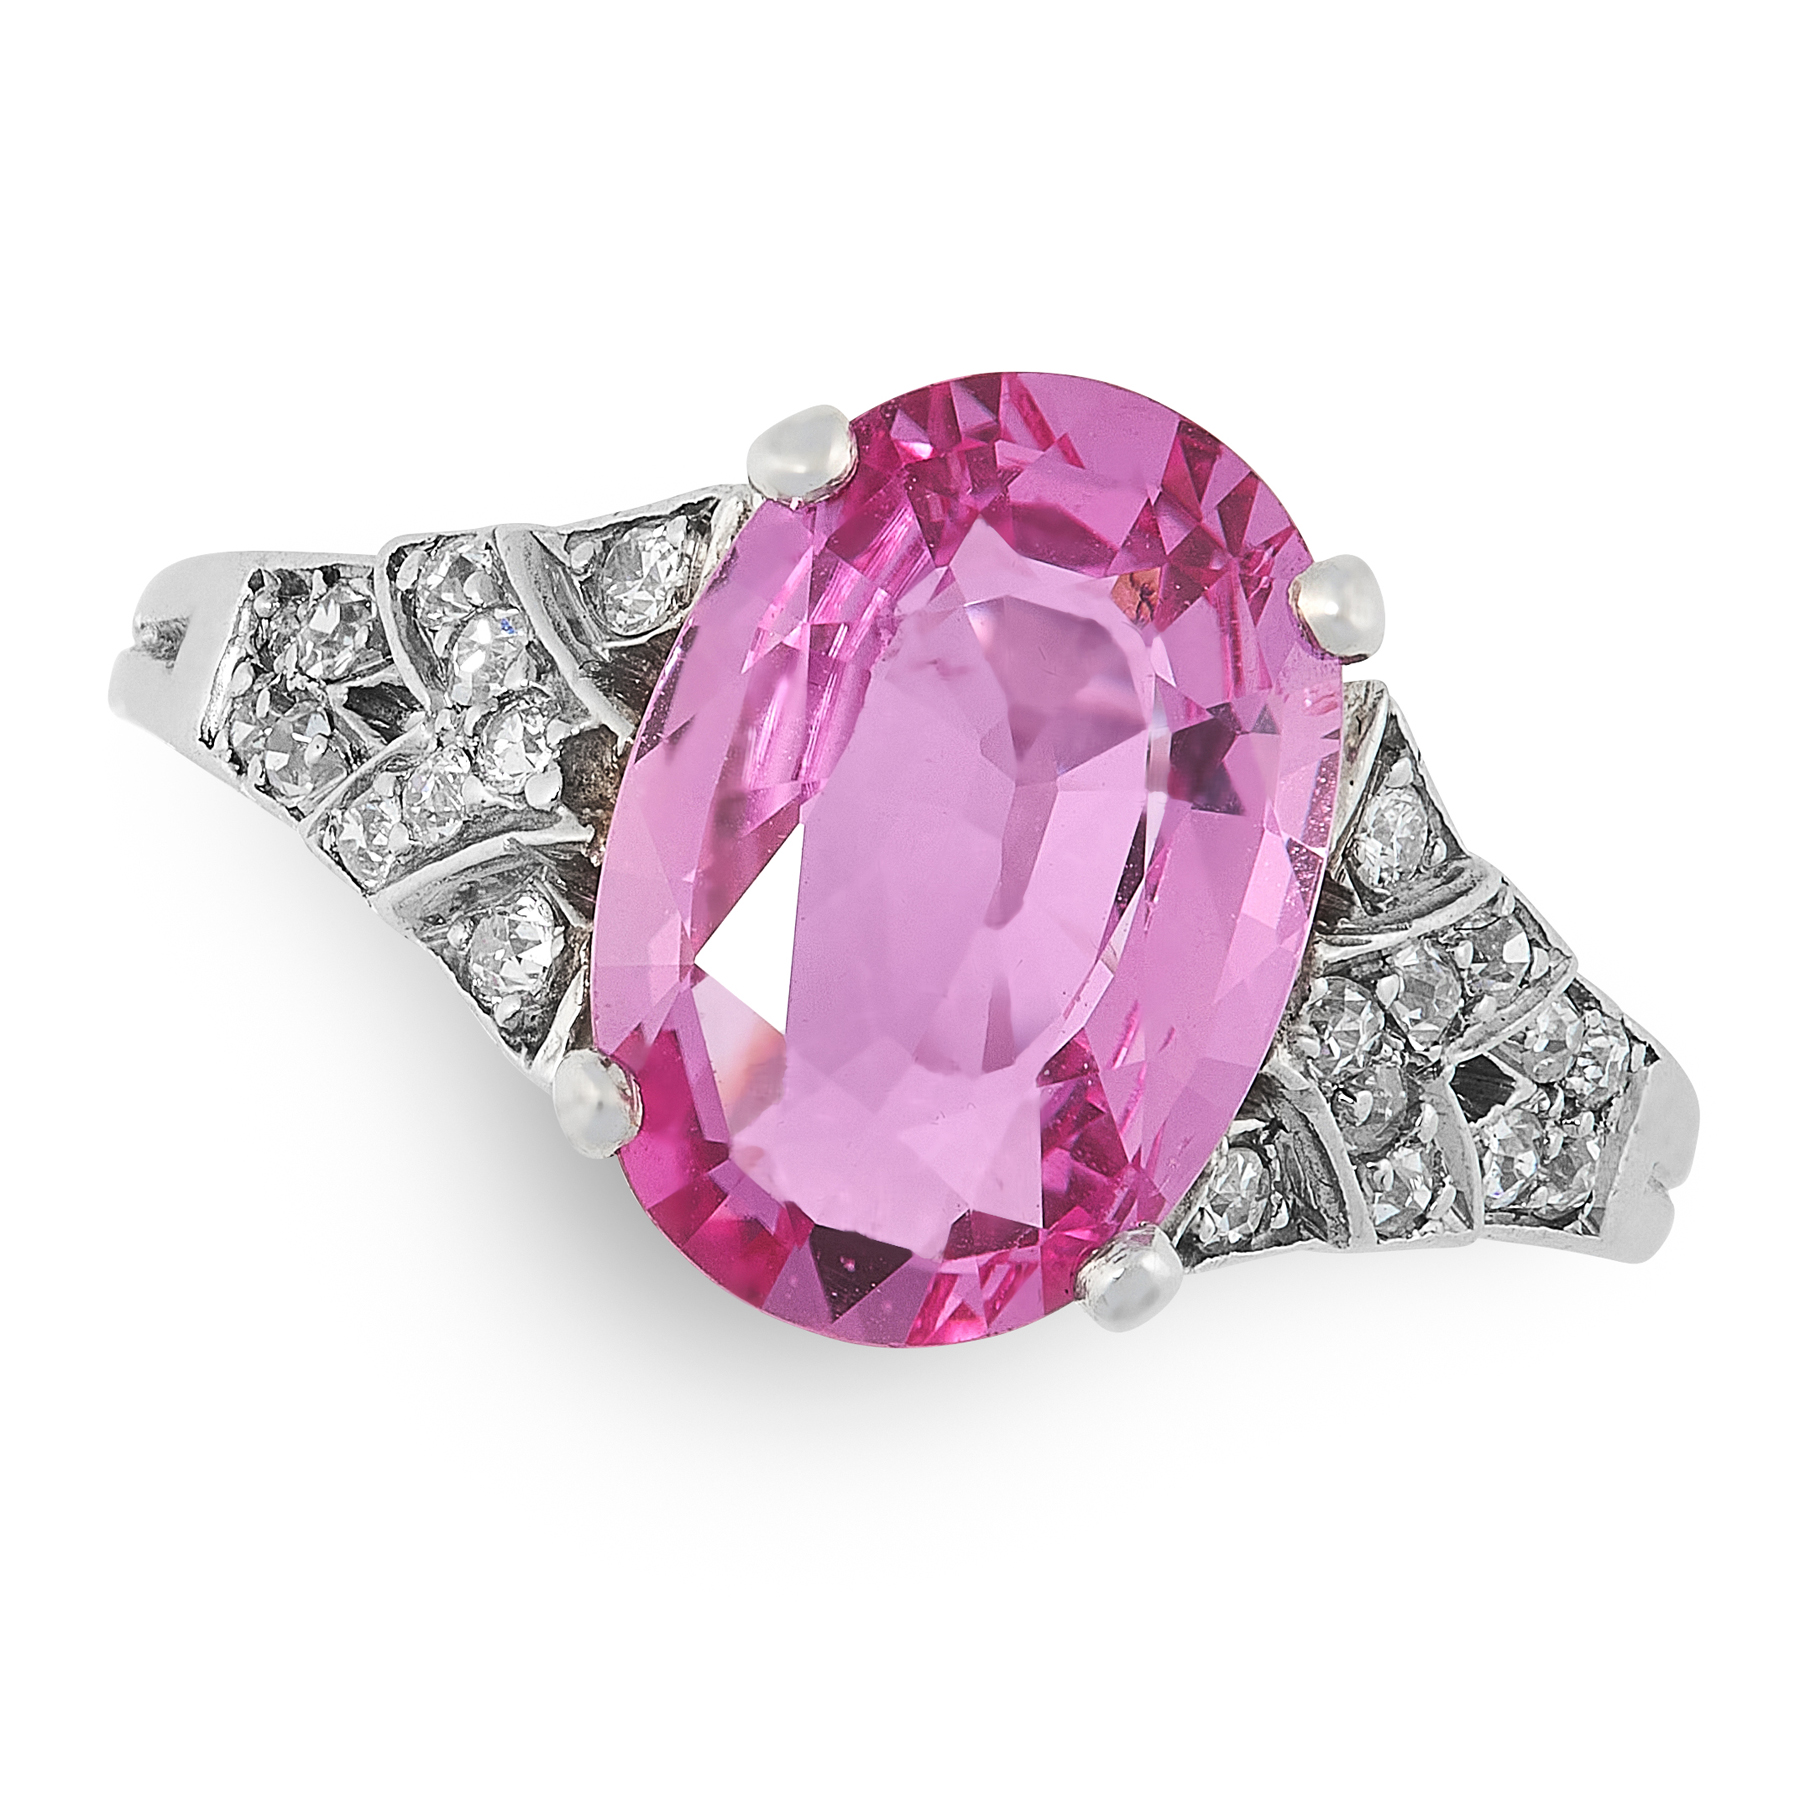 AN UNHEATED PINK SAPPHIRE AND DIAMOND RING in white gold, set with an oval cut pink sapphire of 3.76